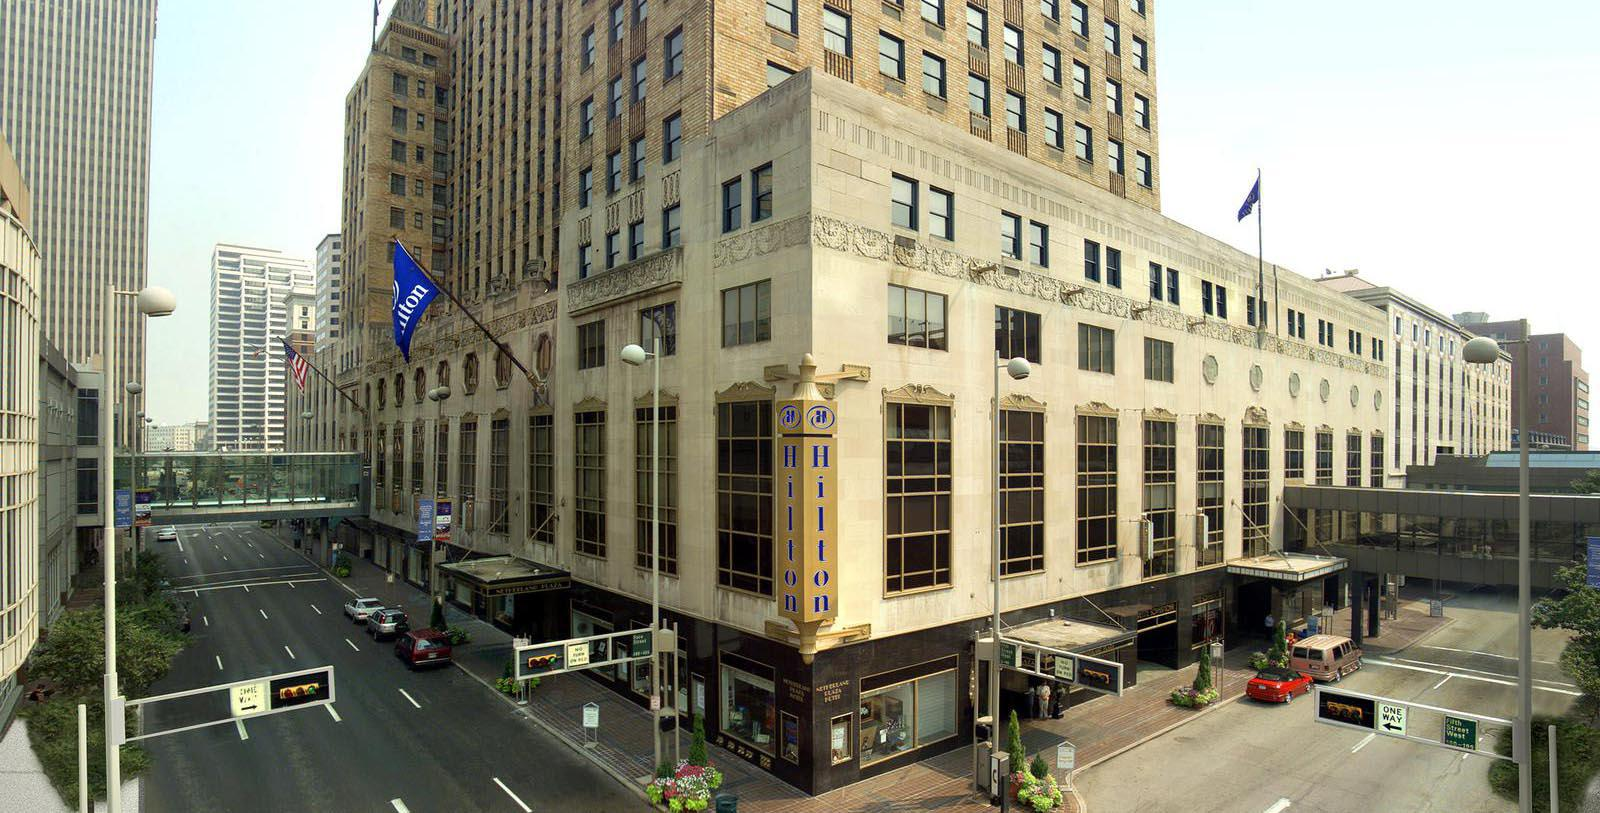 Image of hotel exterior Hilton Cincinnati Netherland Plaza, 1931, Member of Historic Hotels of America, in Cincinnati, Ohio,Overview